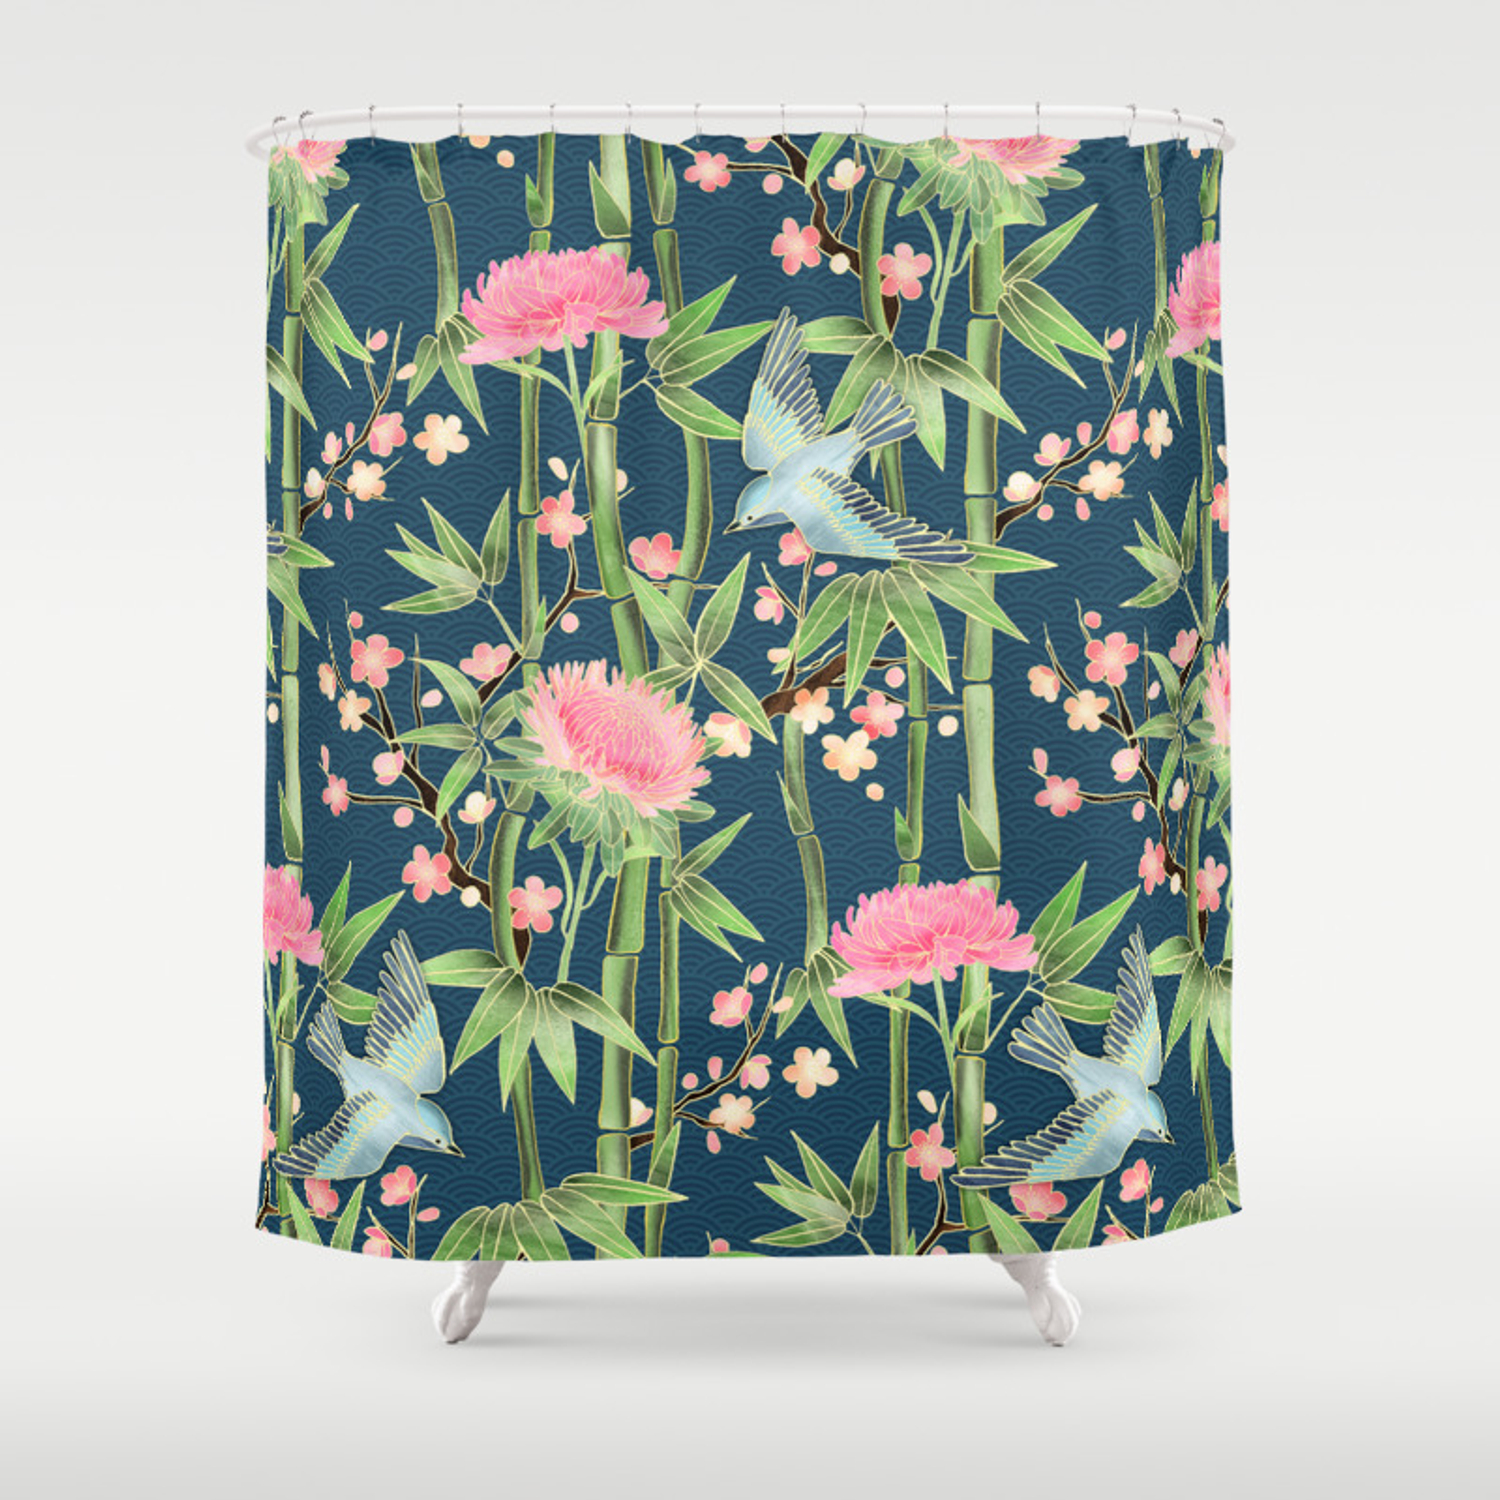 Bamboo Birds And Blossom Dark Teal Shower Curtain